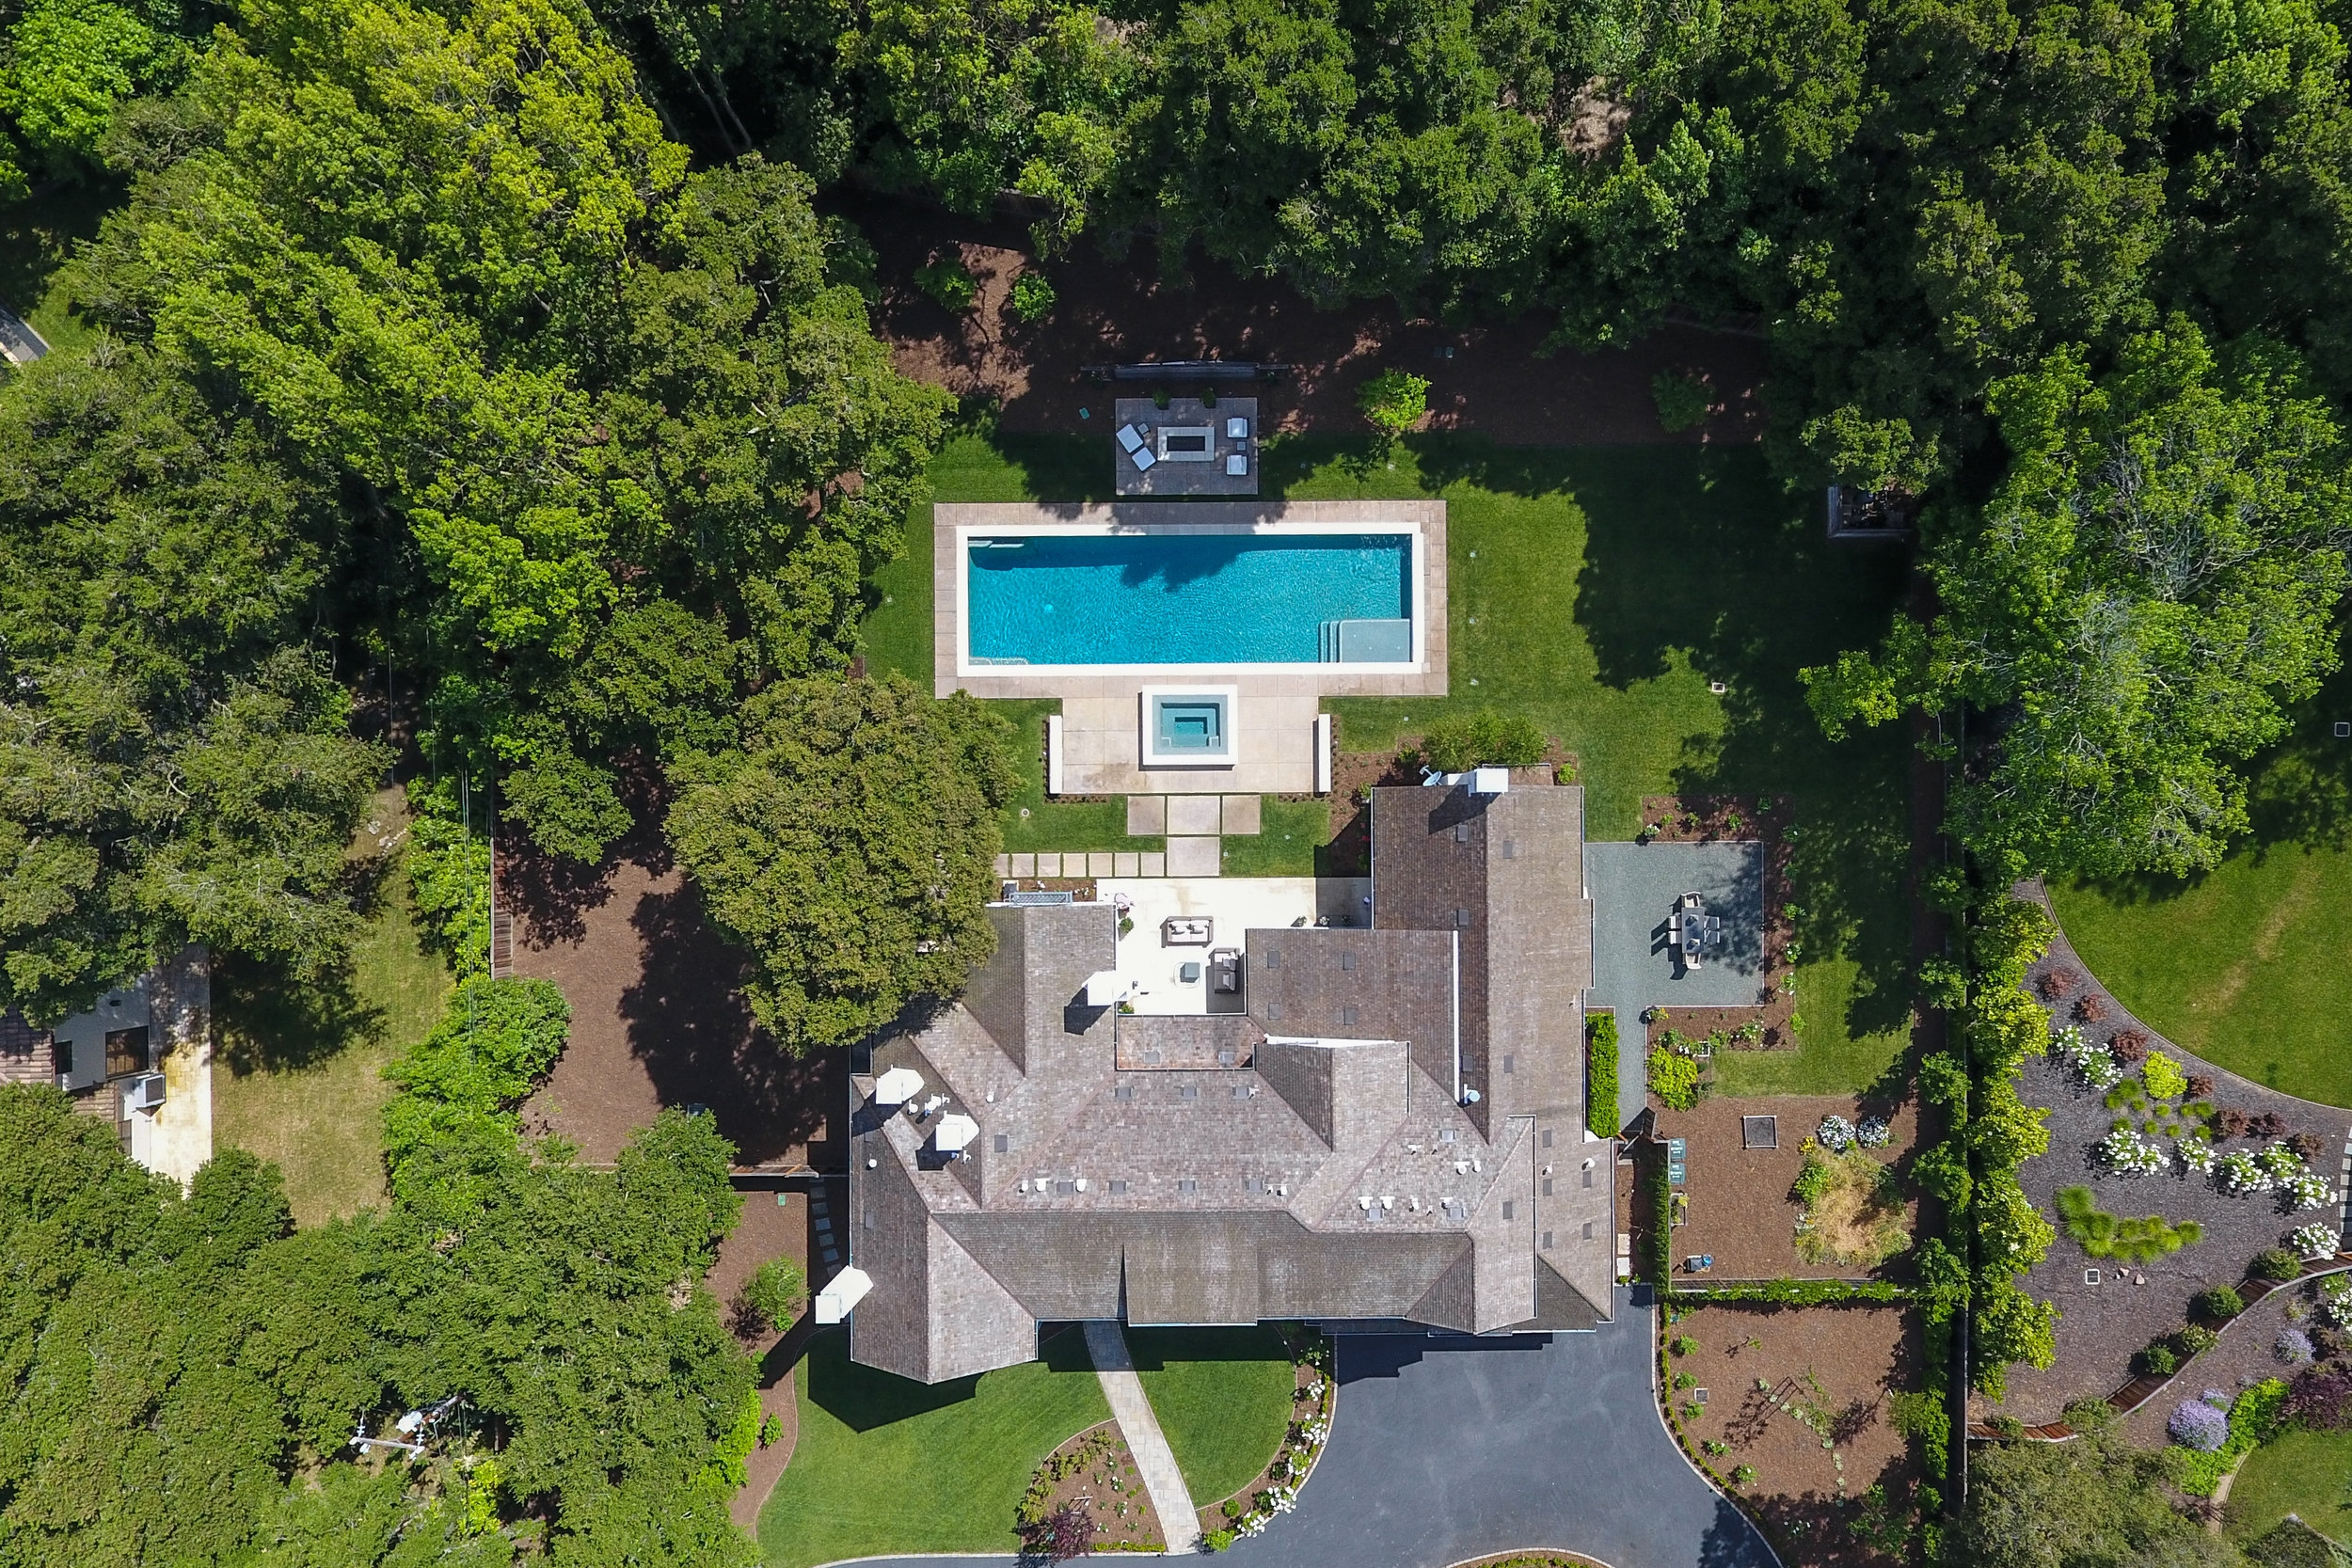 120 TOYON ROAD, ATHERTON - SOLD: $9,375,000 | Represented Seller